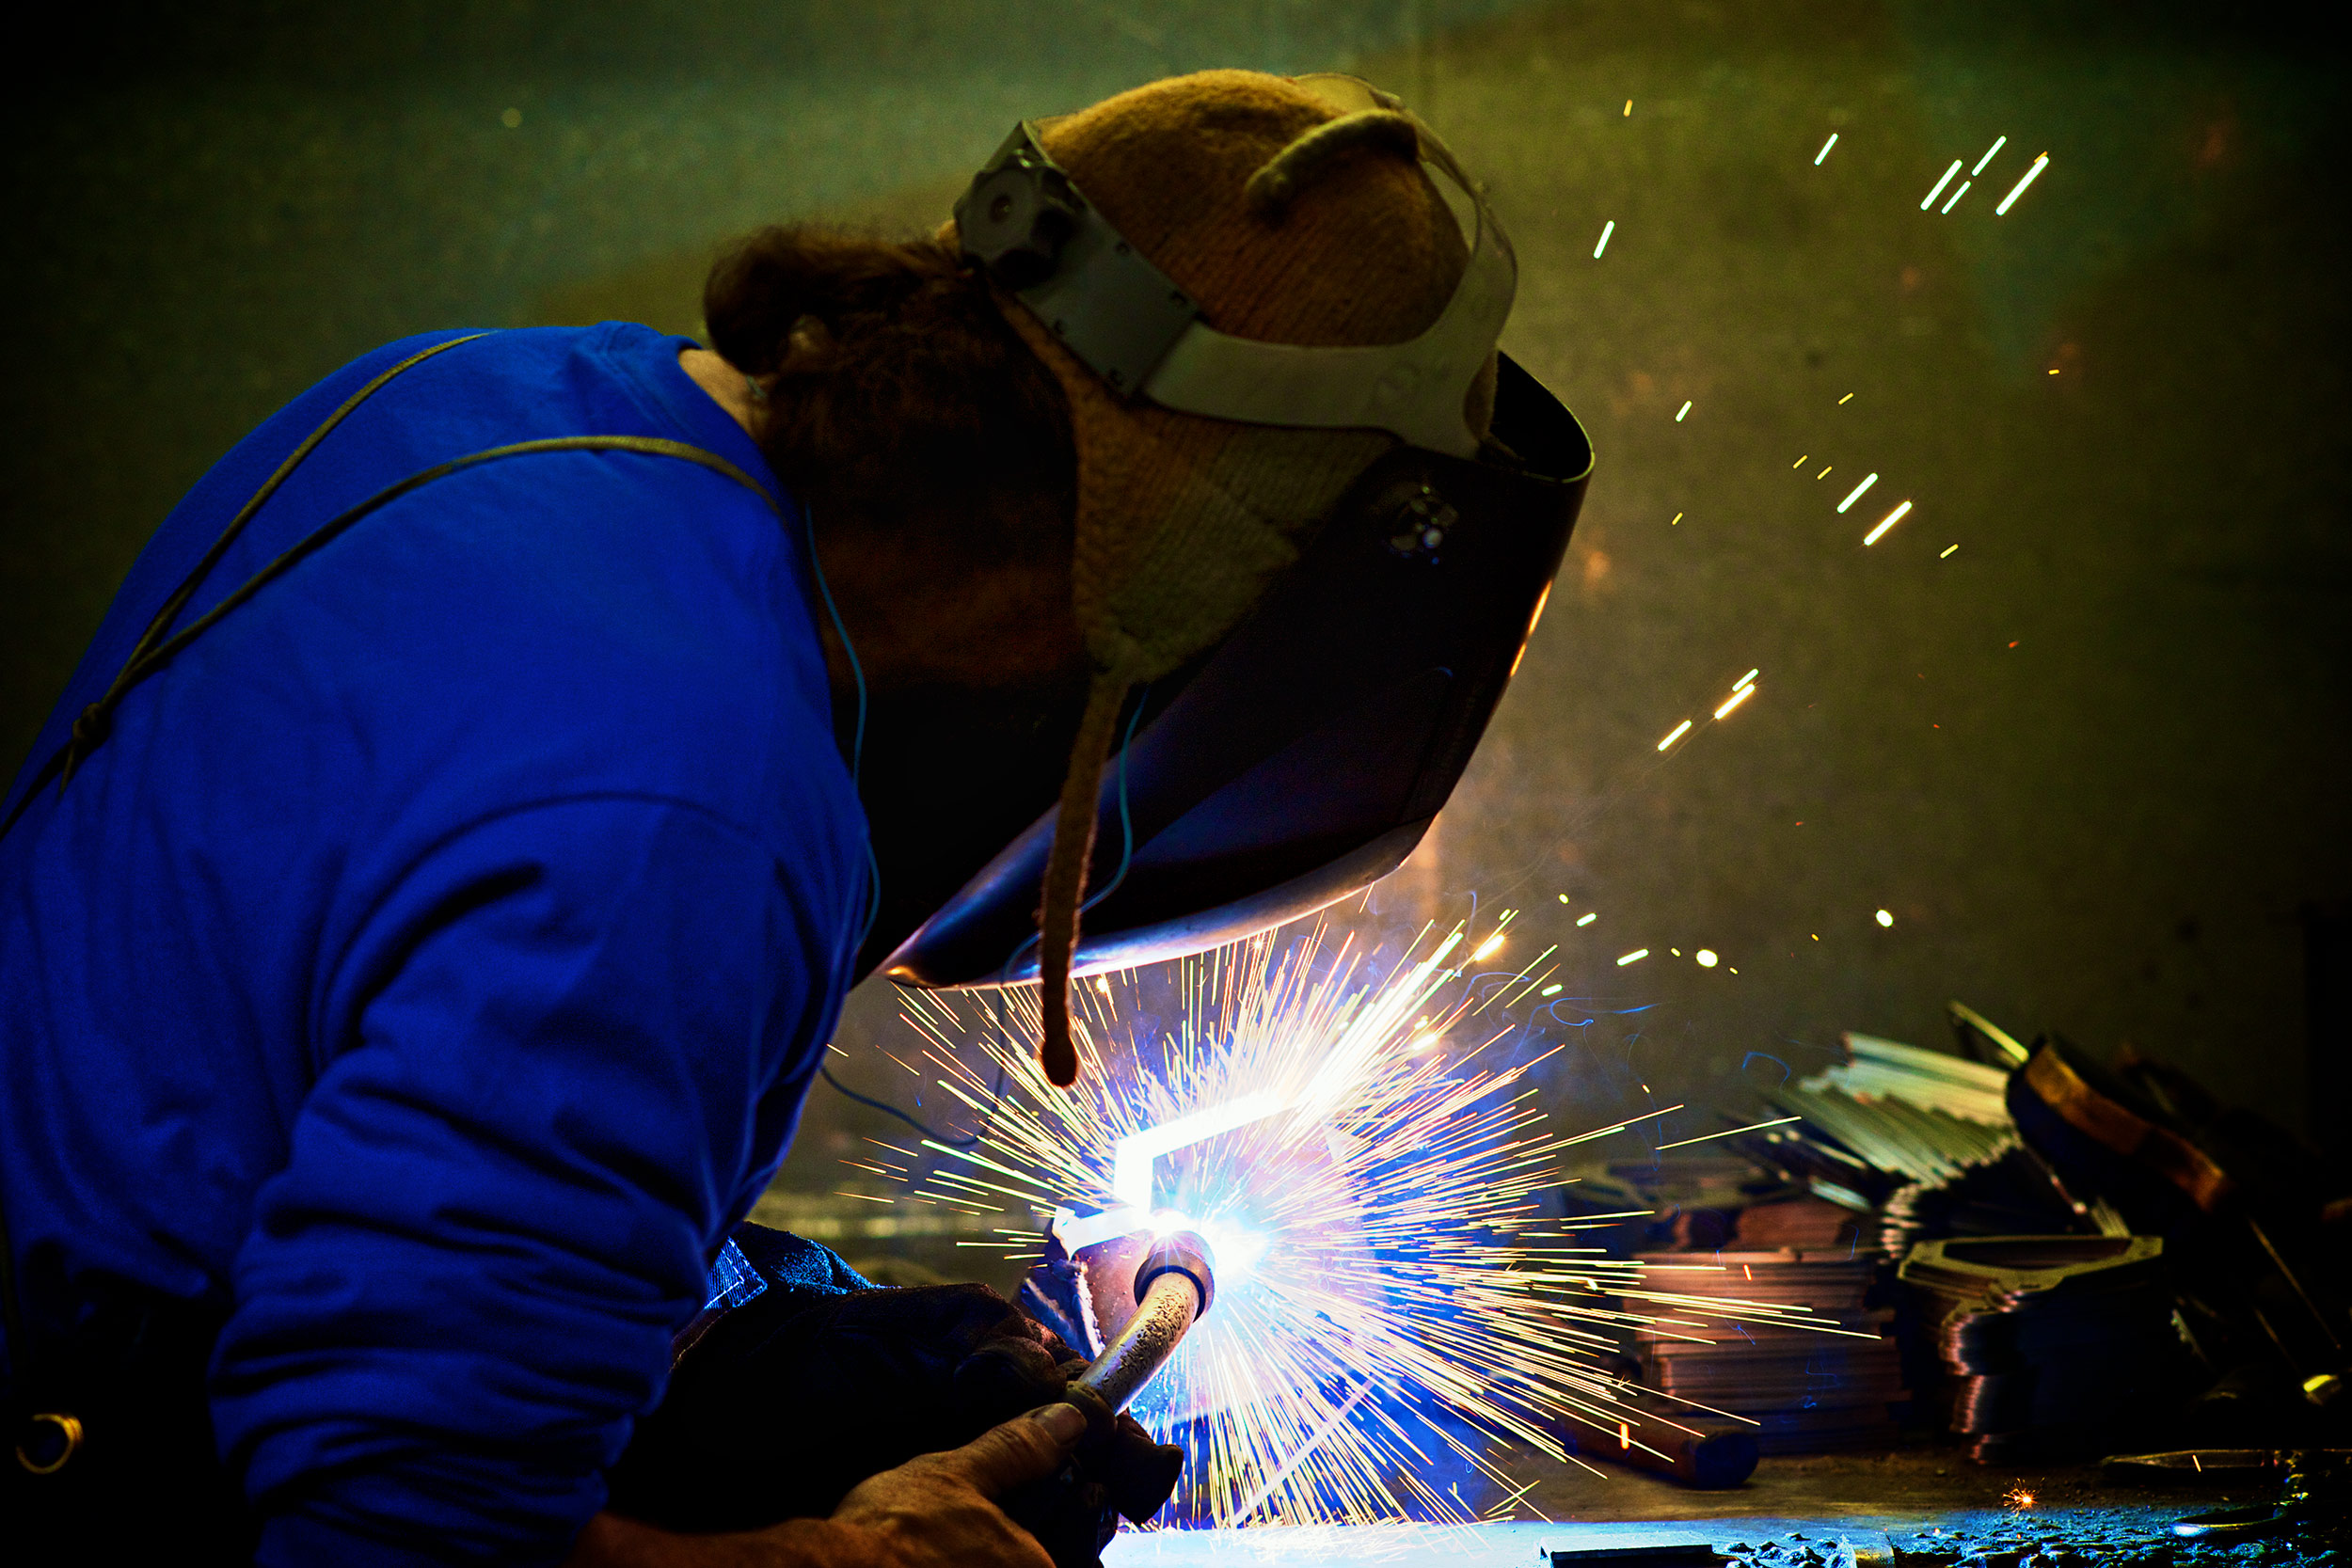 Industrial-Photographer-Welder-Sparks